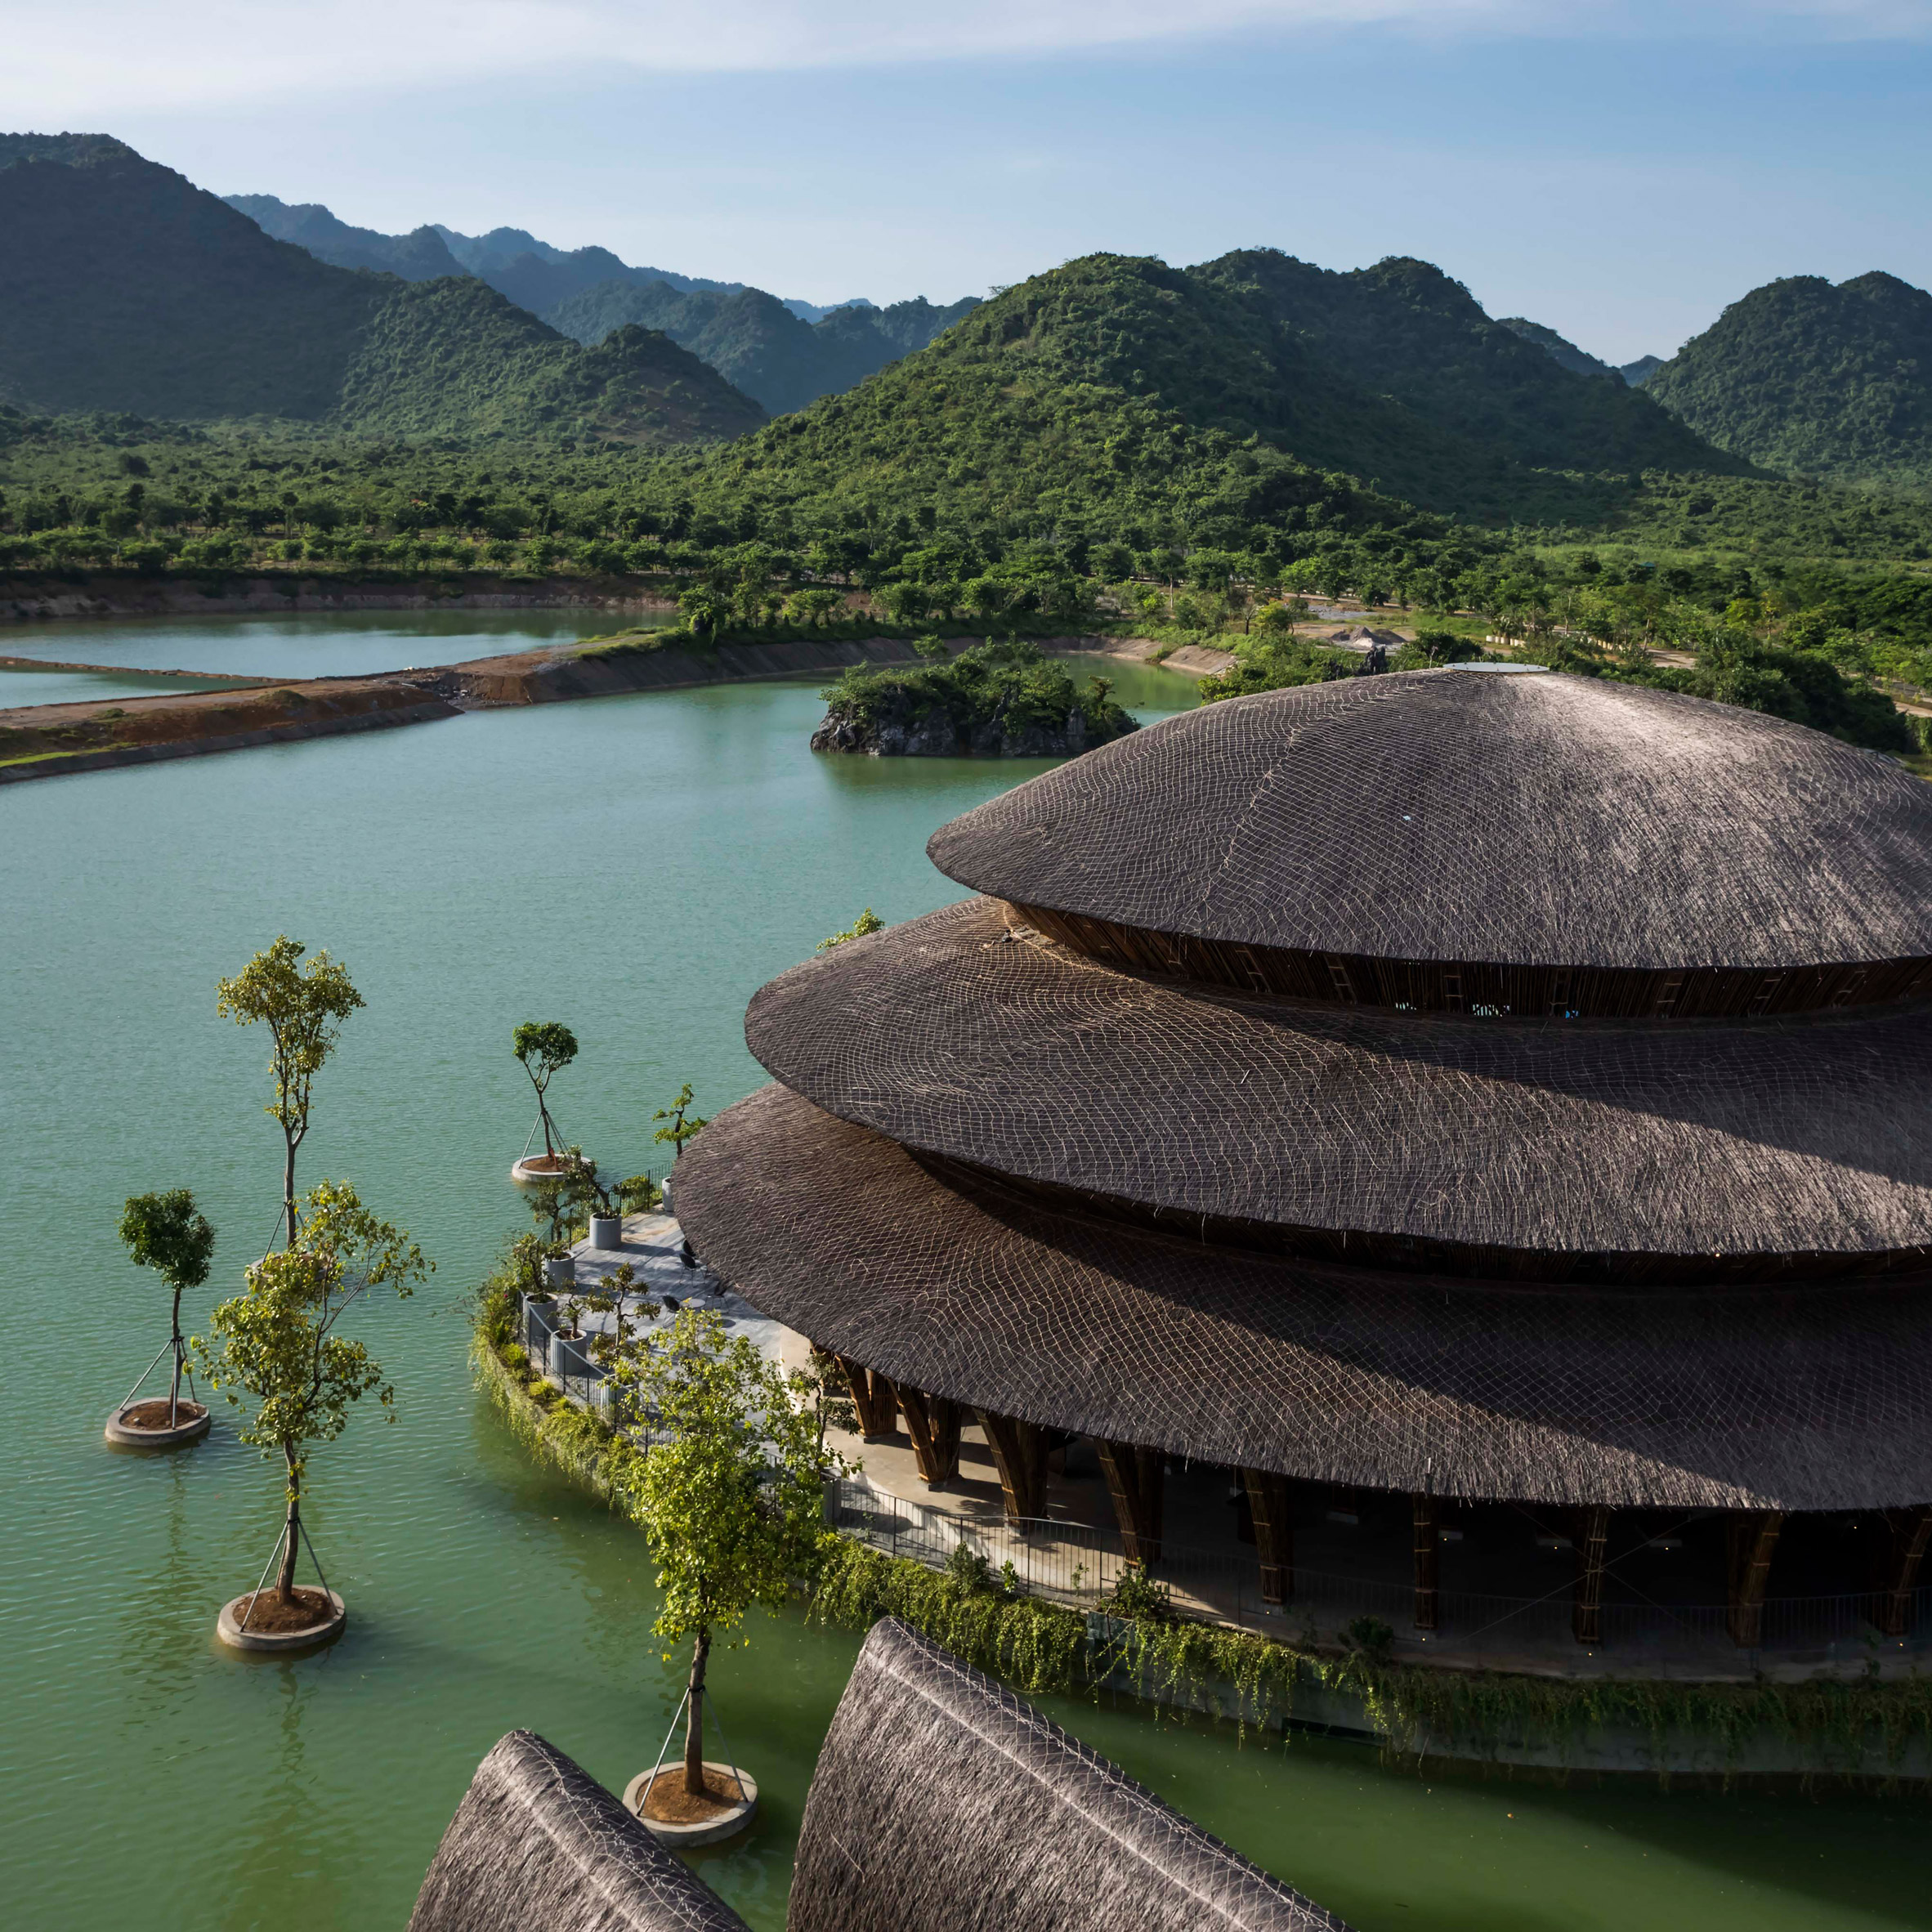 Vedana Restaurant by Vo Trong Nghia Architects